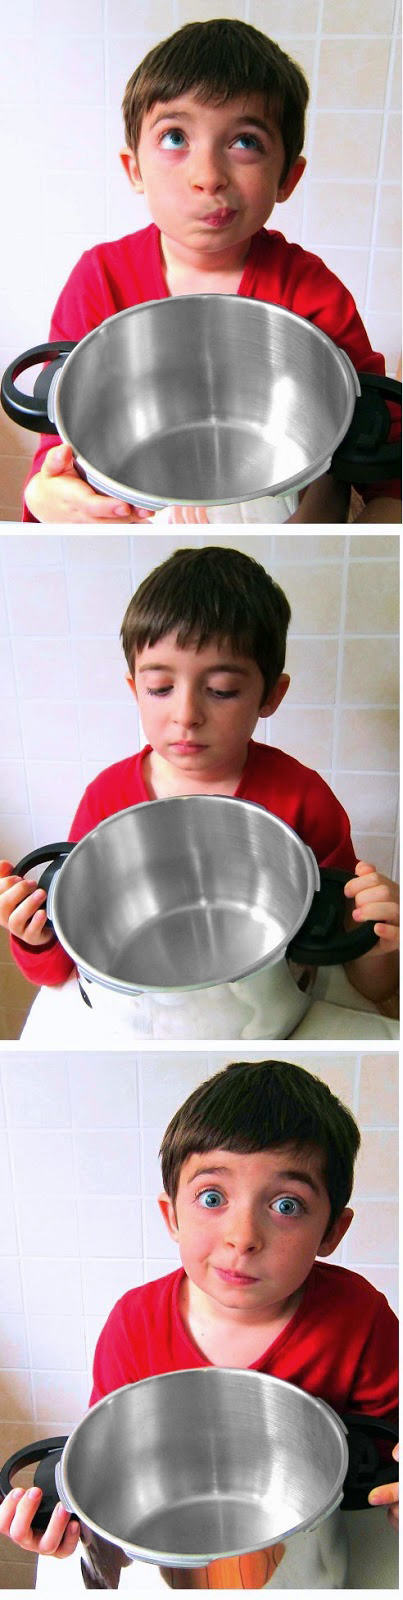 funny faces with a pressure cooker